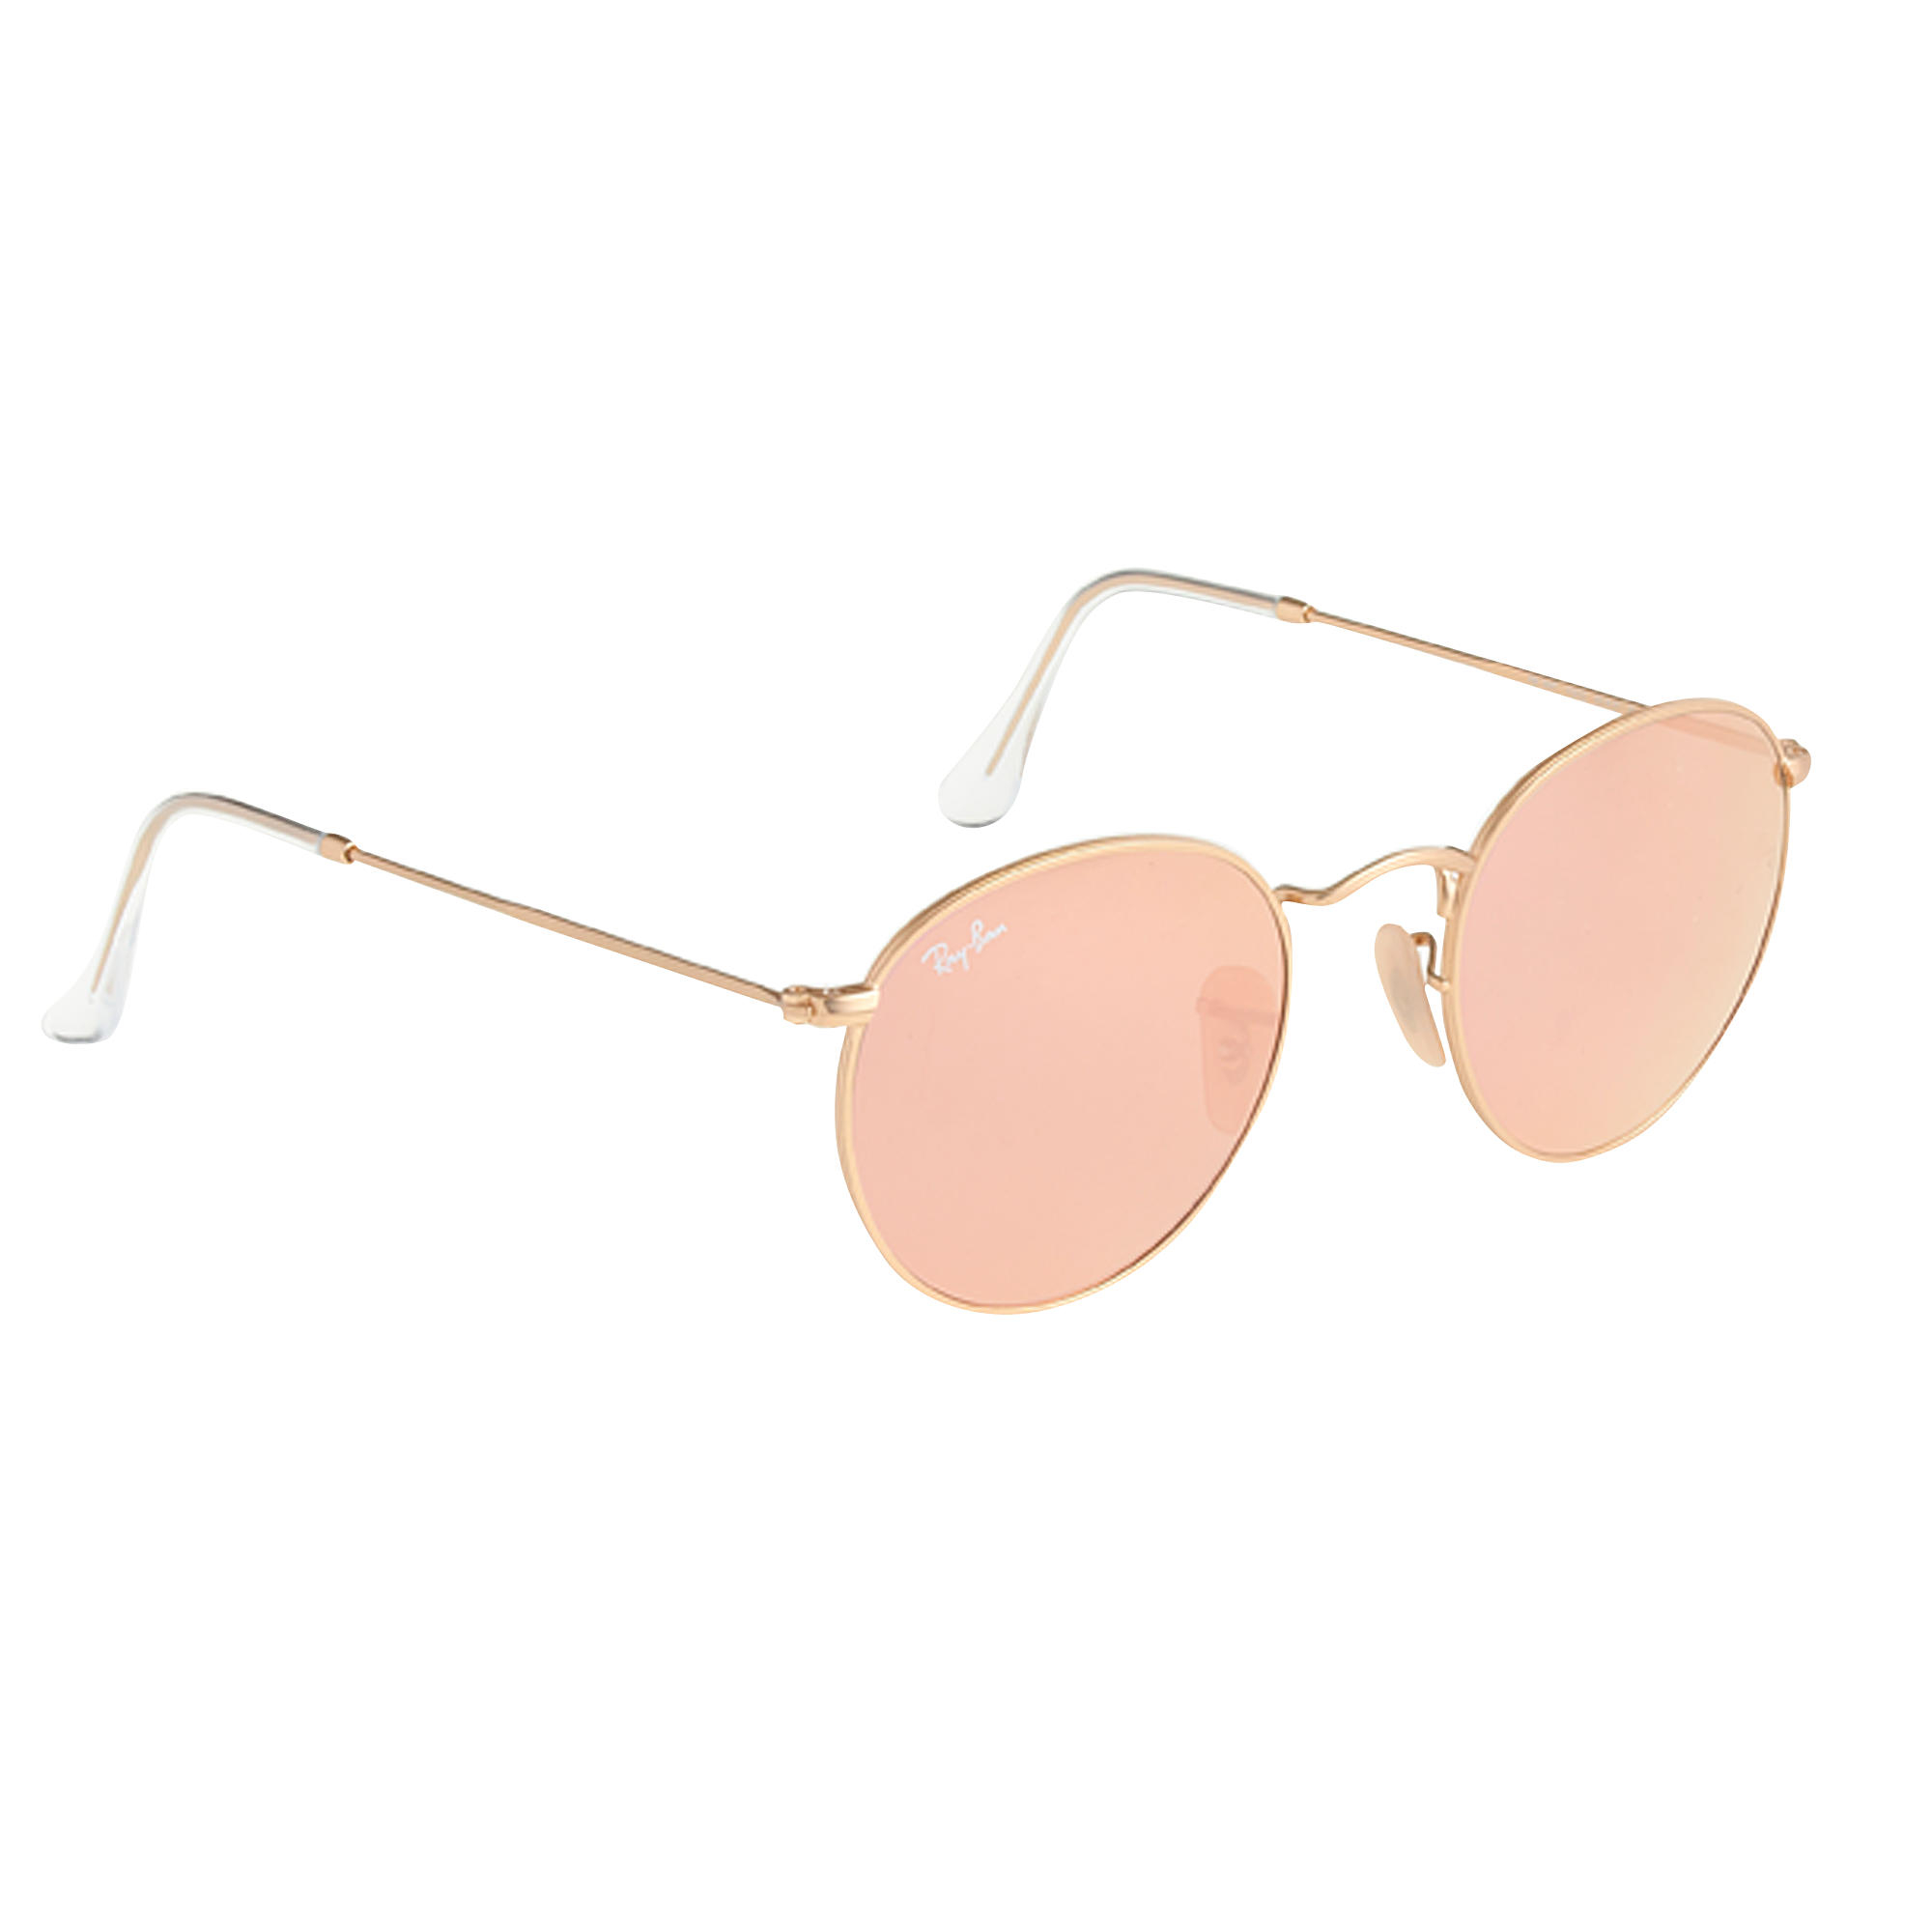 bcc3922b5fd51 ... clearance lyst j.crew ray ban retro round sunglasses with flash lenses  in pink 19998